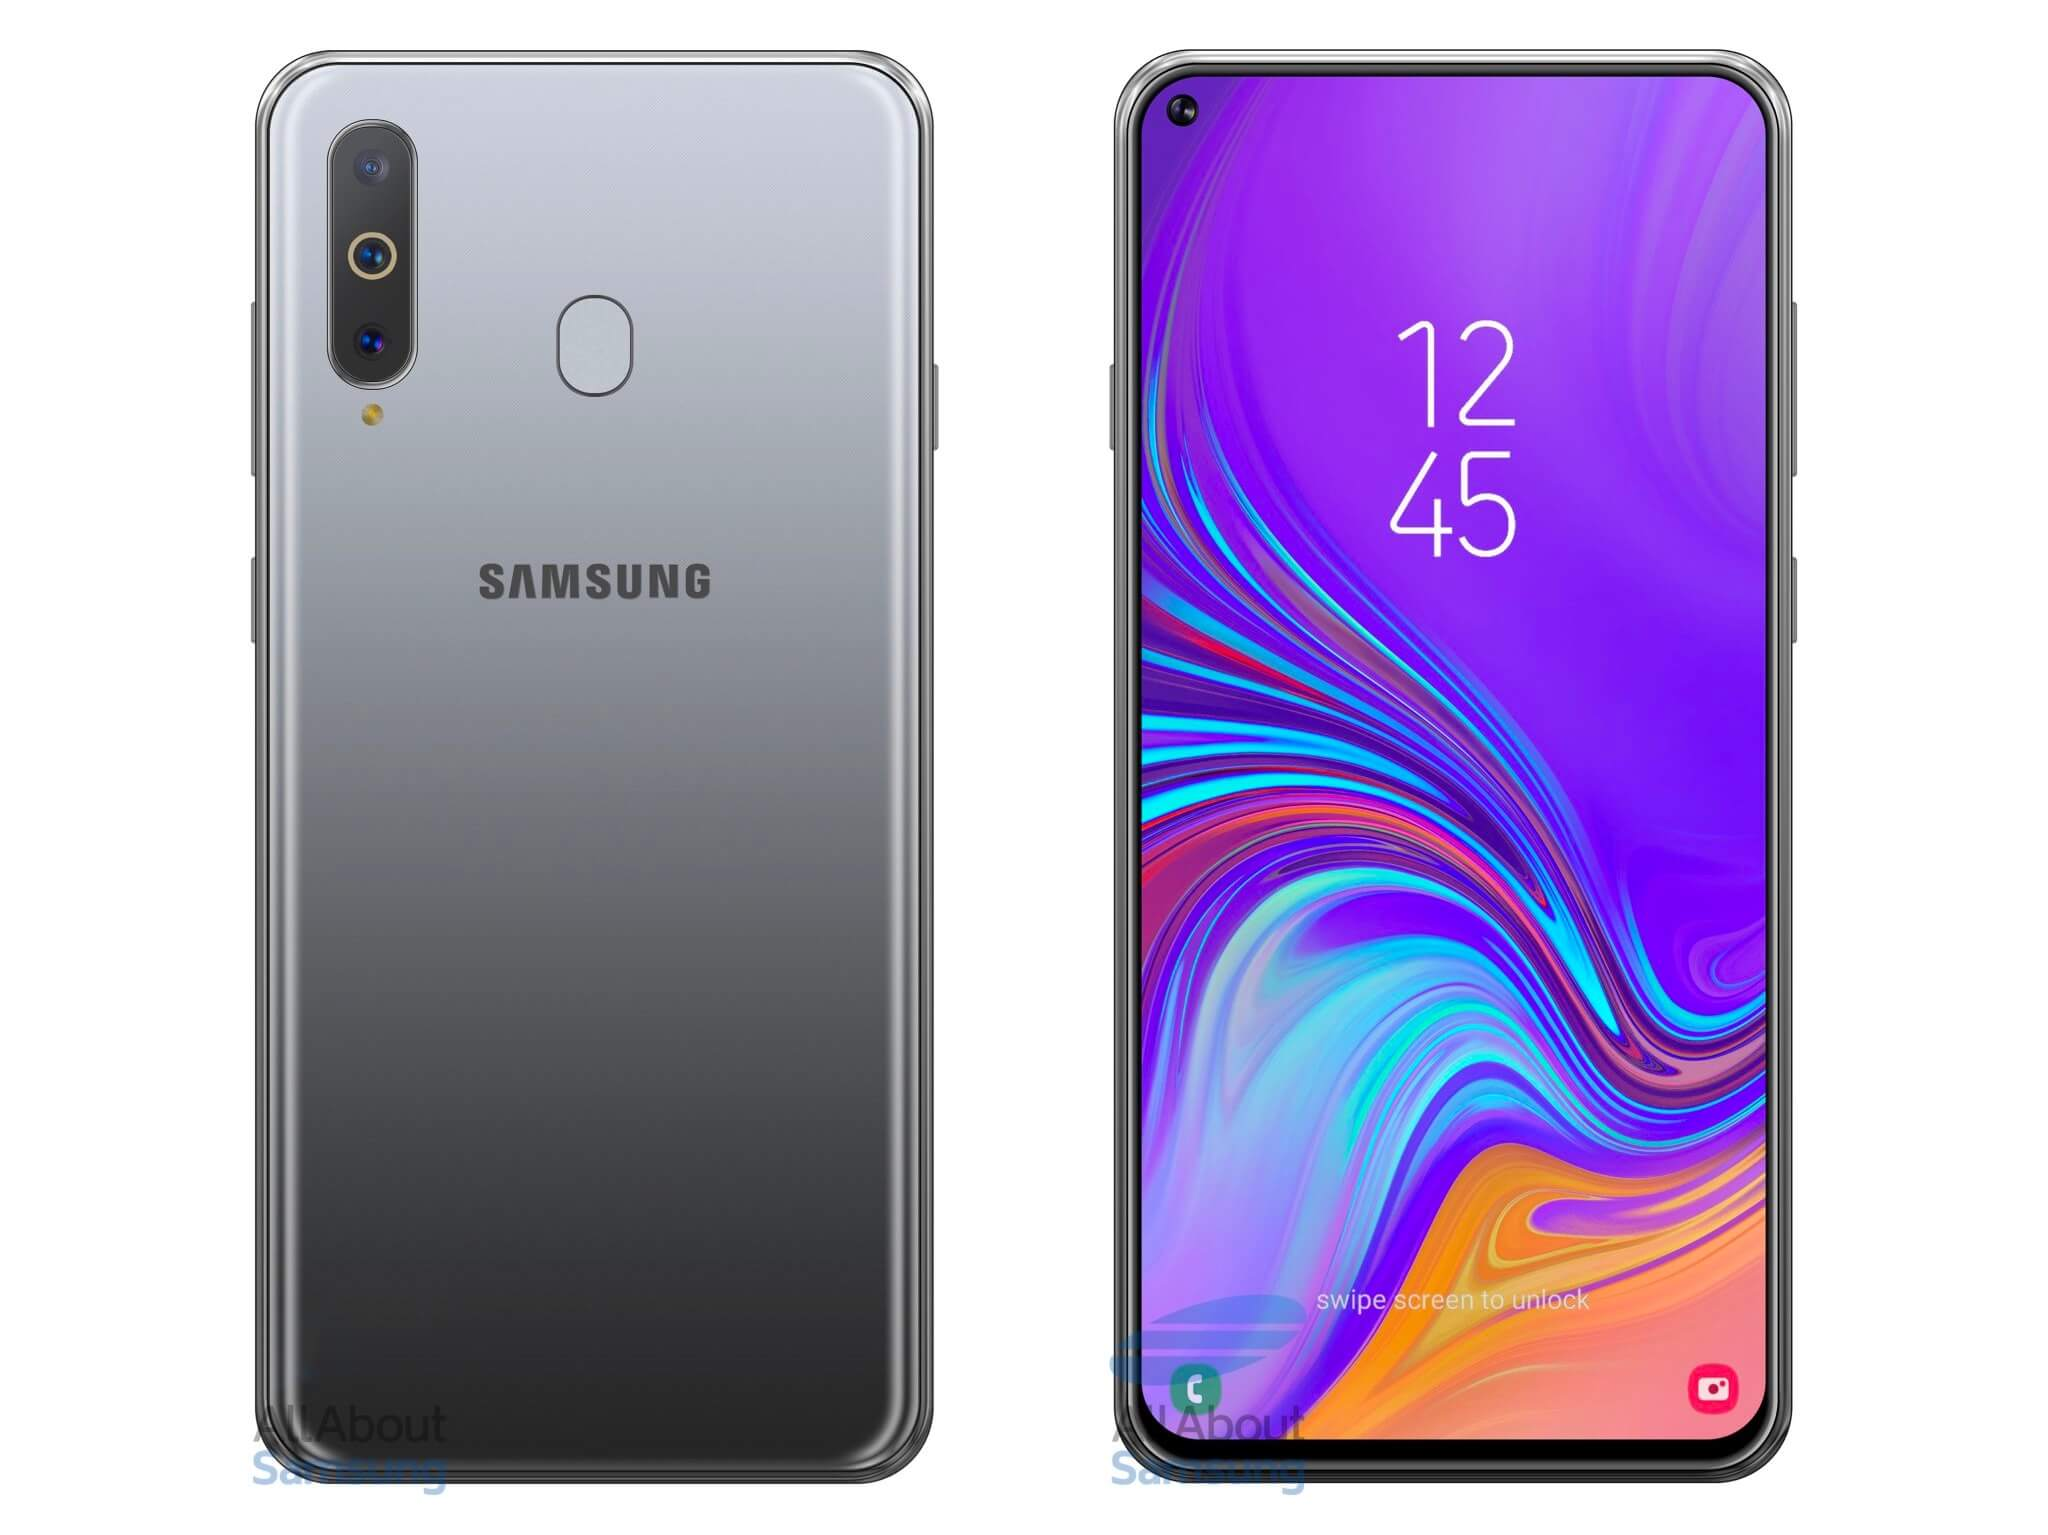 Galaxy S10 Lite case renders show side-mounted fingerprint scanner